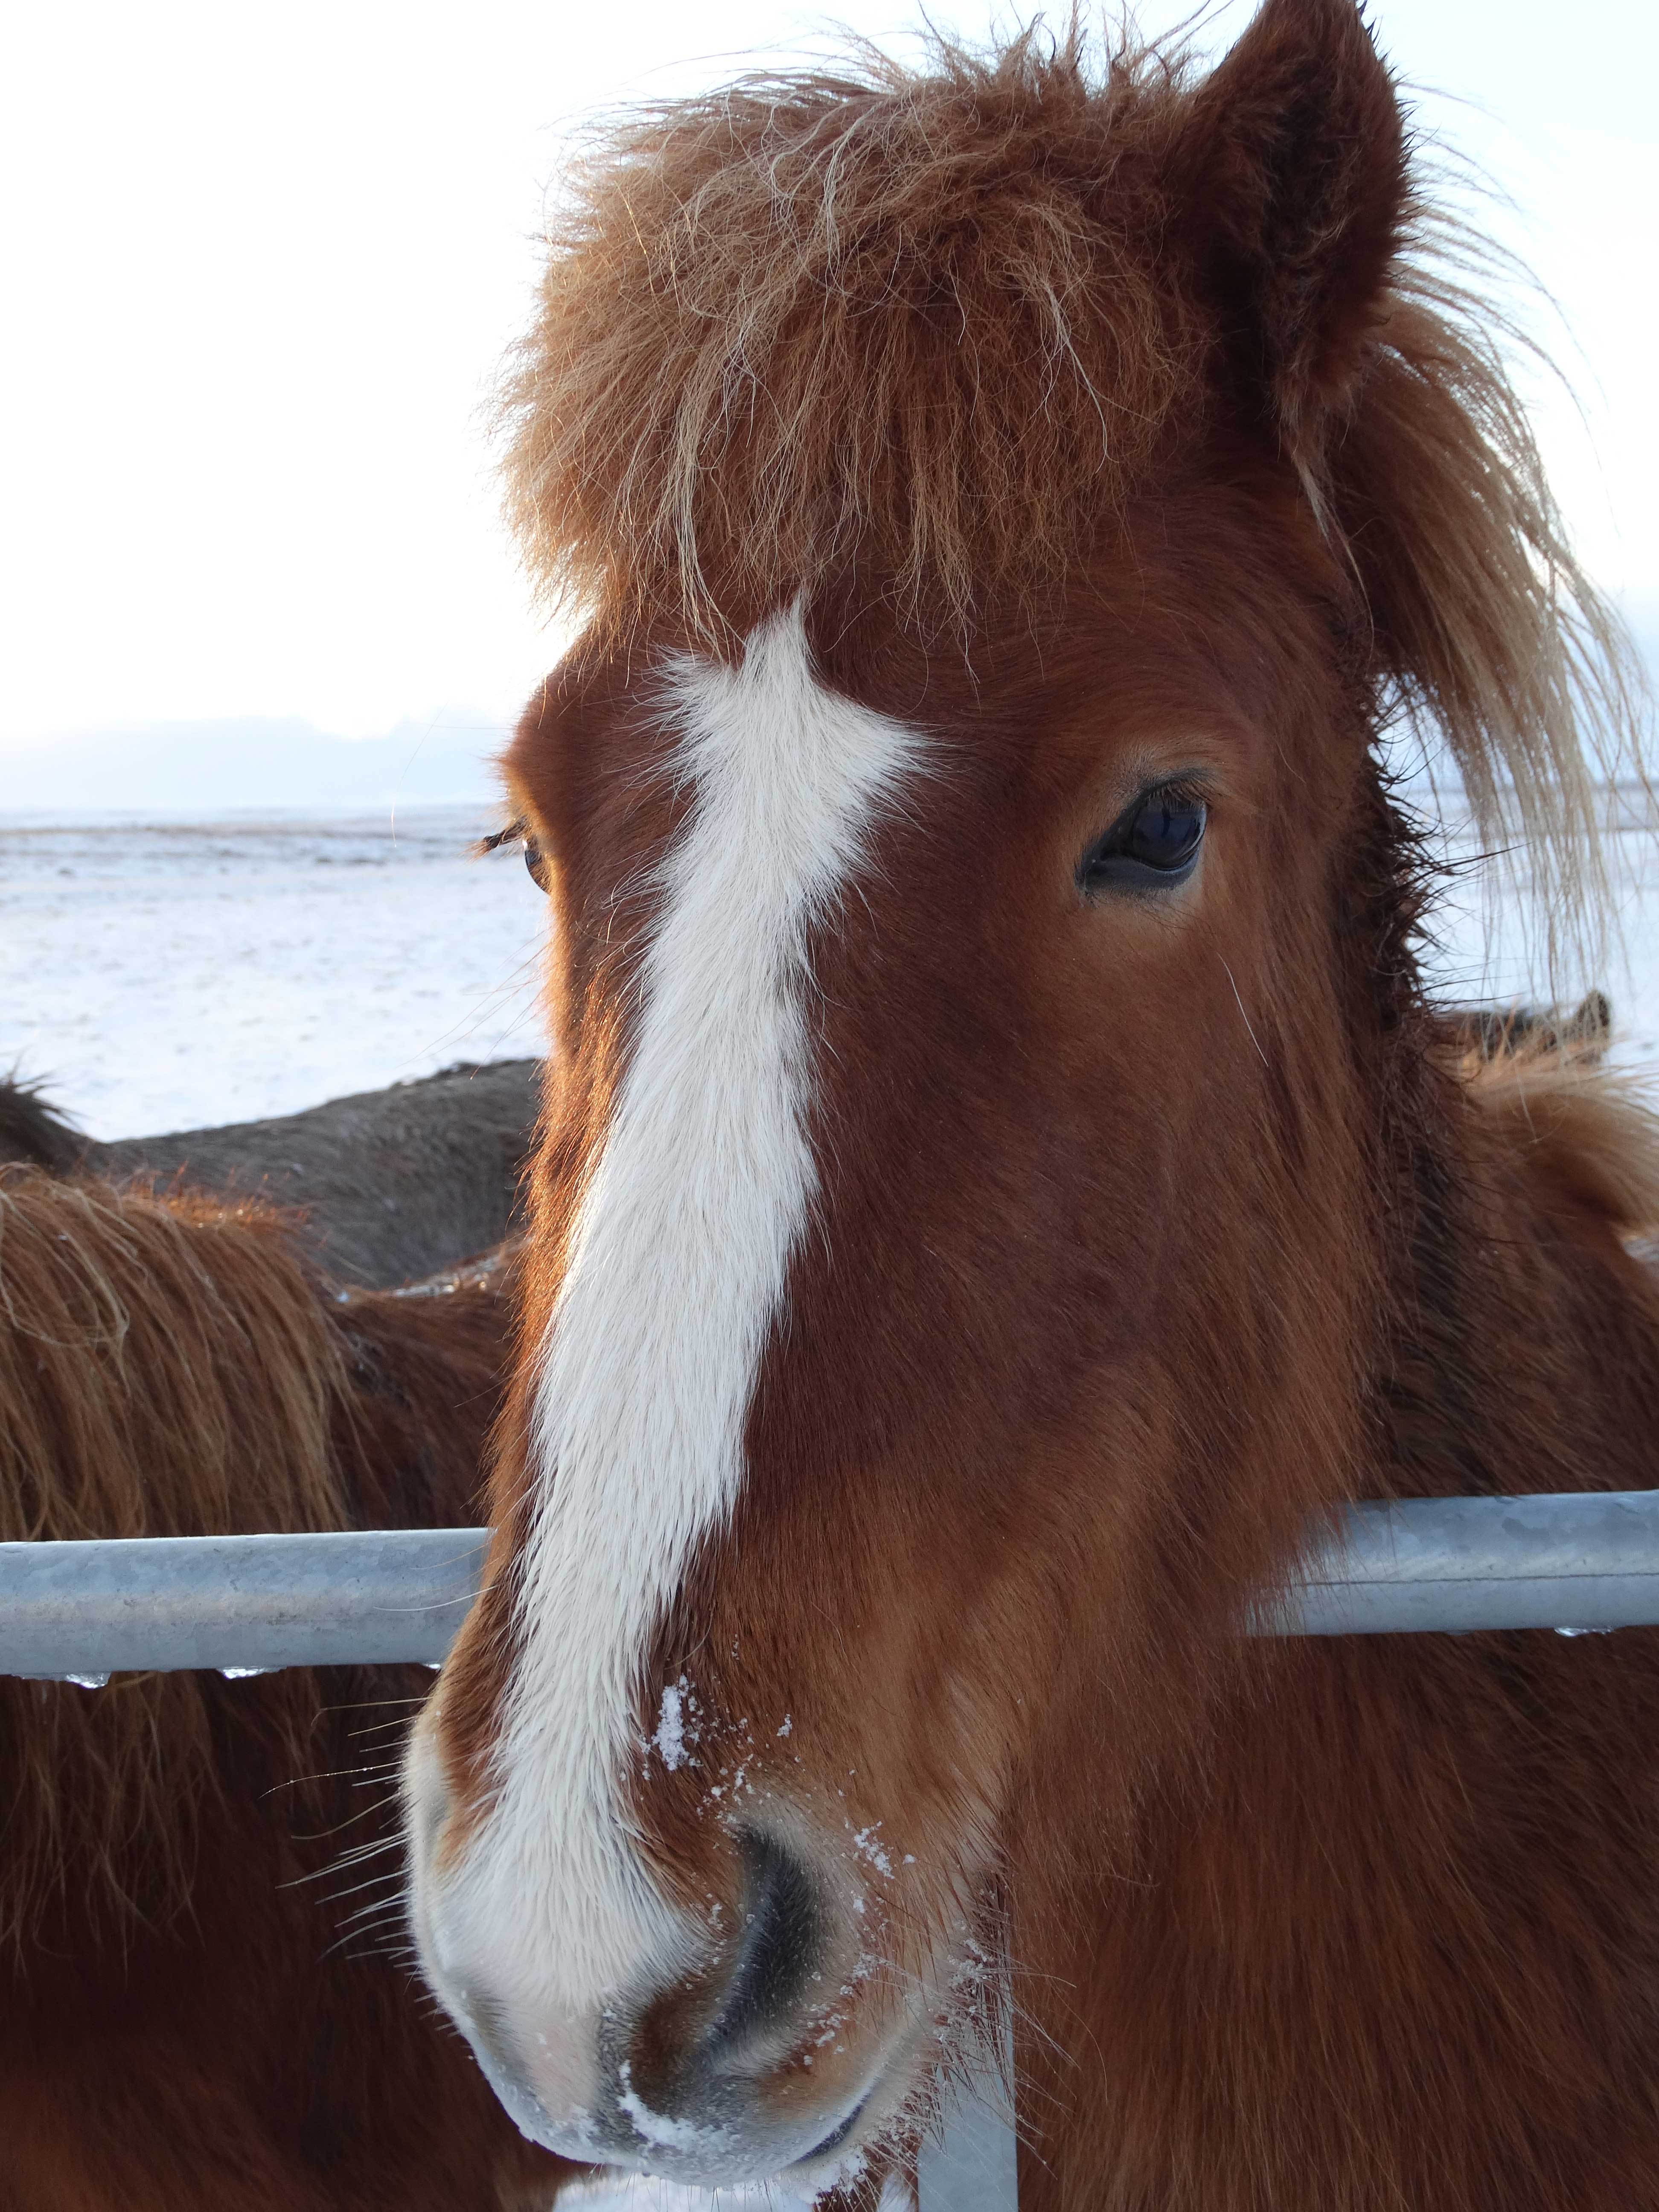 Cute horse in Iceland